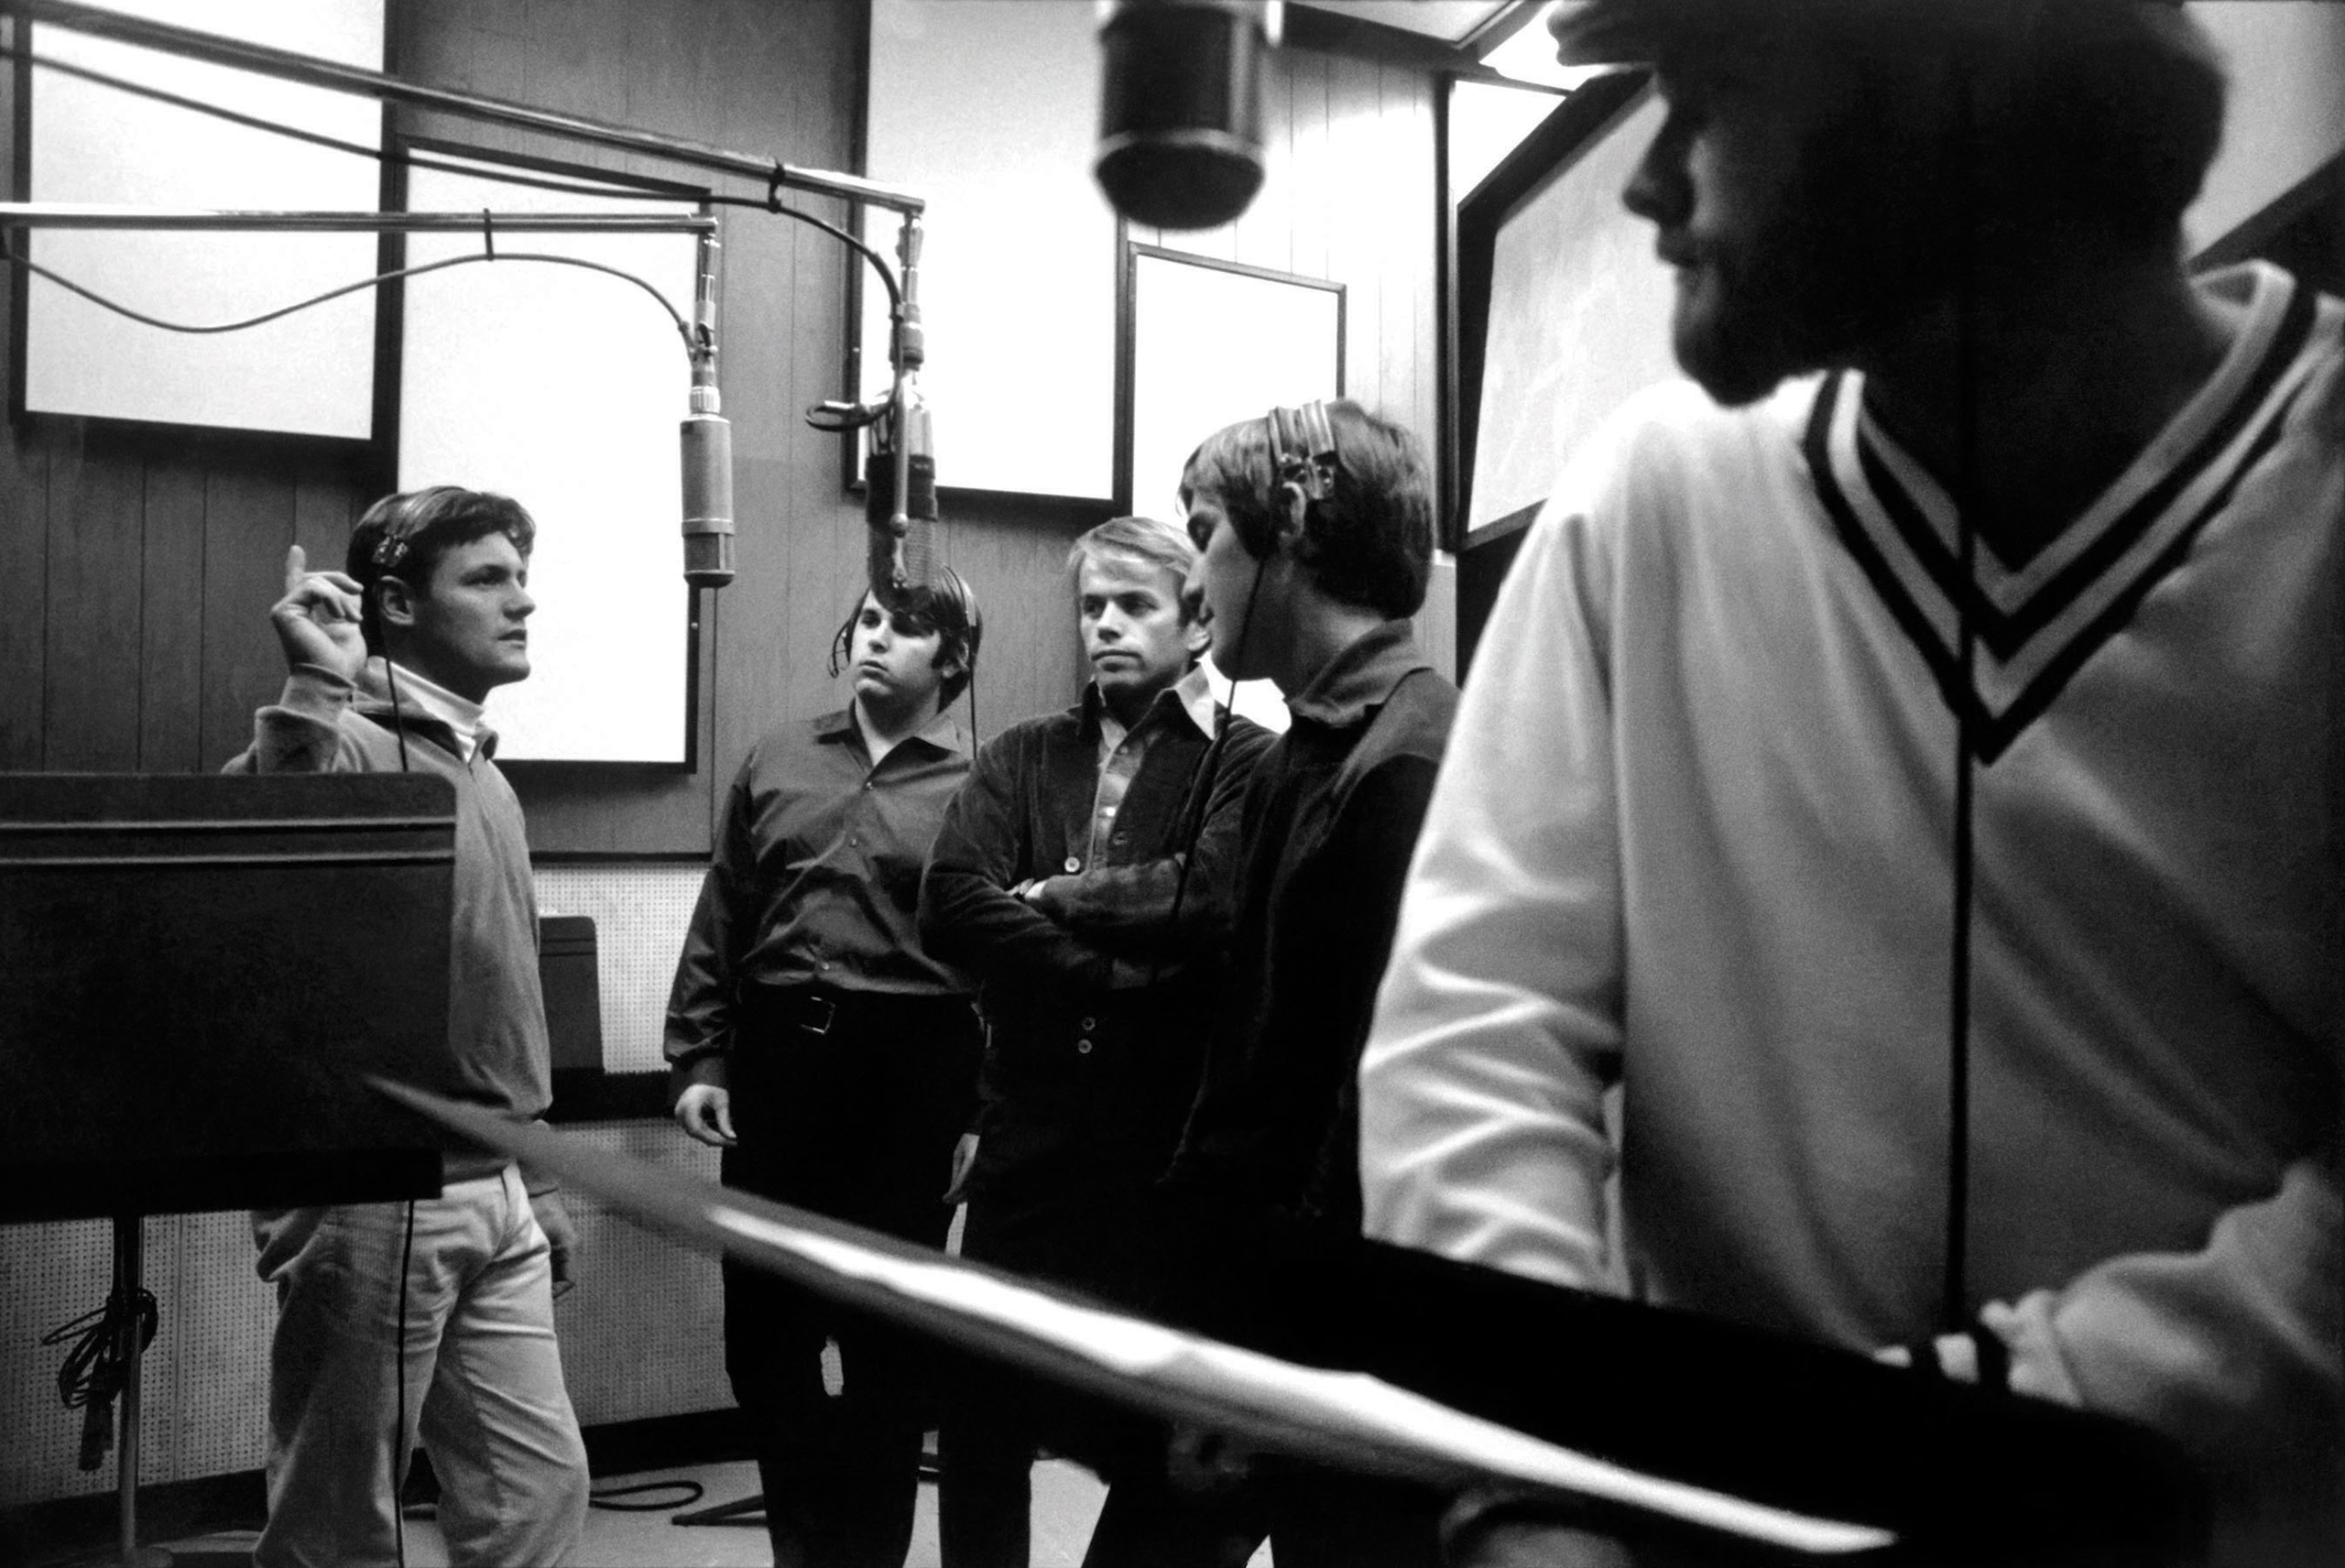 The Beach Boys at Western Recorders Studio 3, Hollywood, during the recording of Pet Sounds in 1965 or 1966.